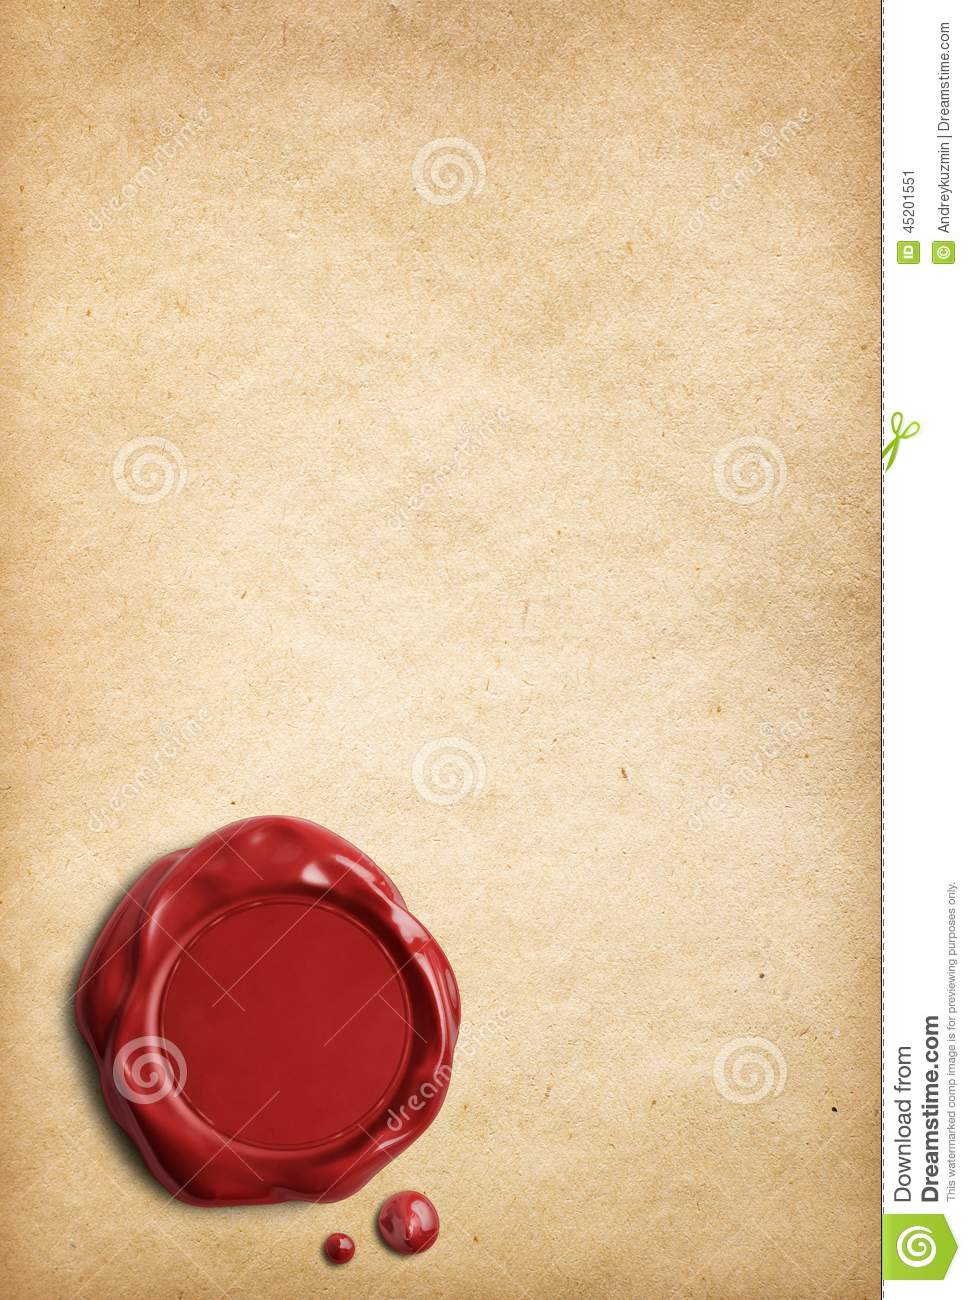 Old Parchment Paper With Red Wax Seal Stock Photo Image